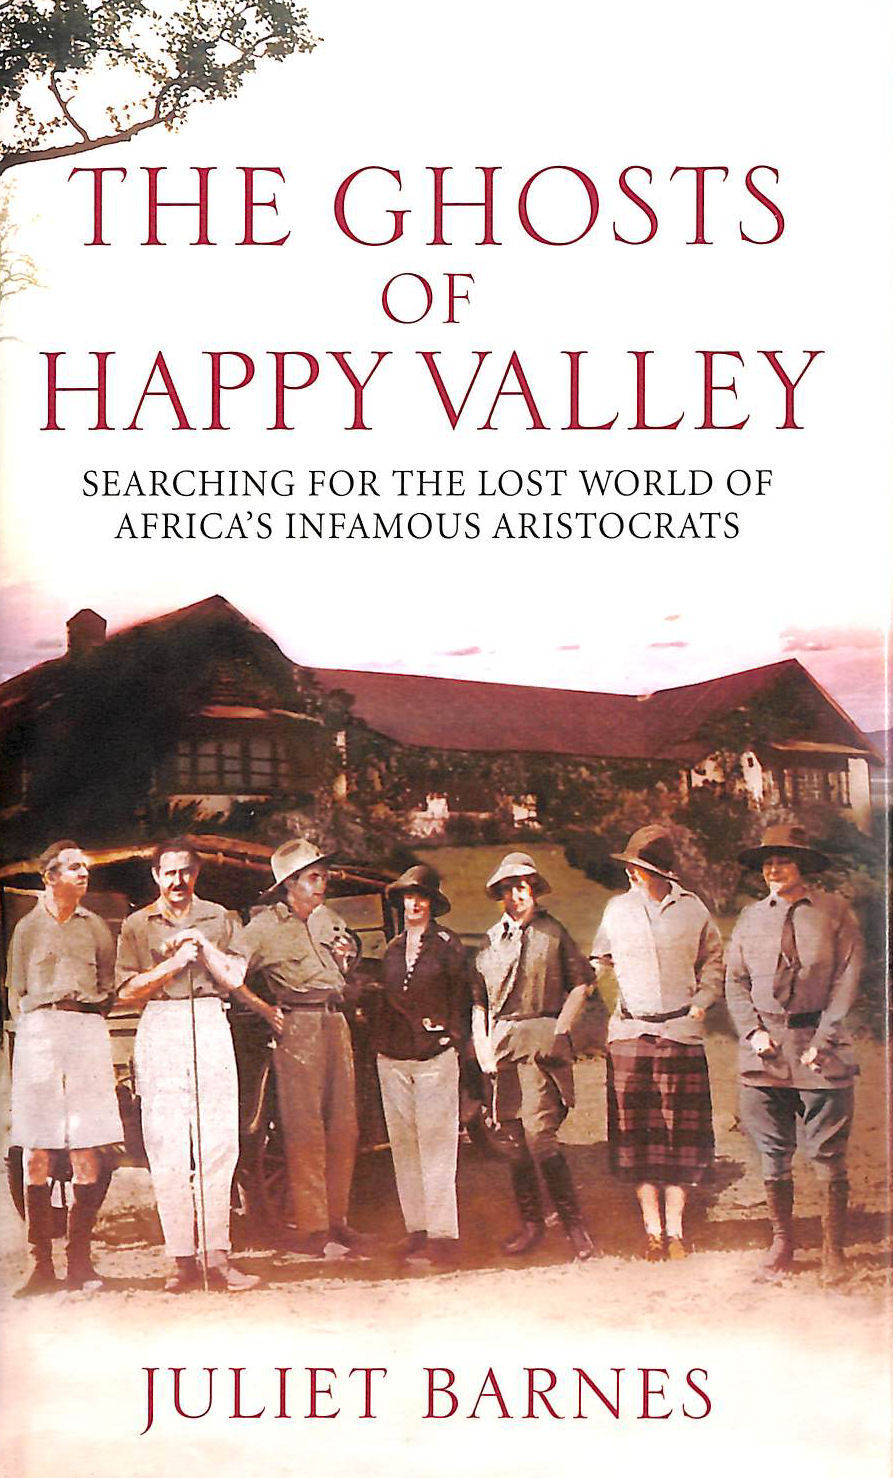 Image for The Ghosts of Happy Valley: Searching for the Lost World of Africa's Infamous Aristocrats